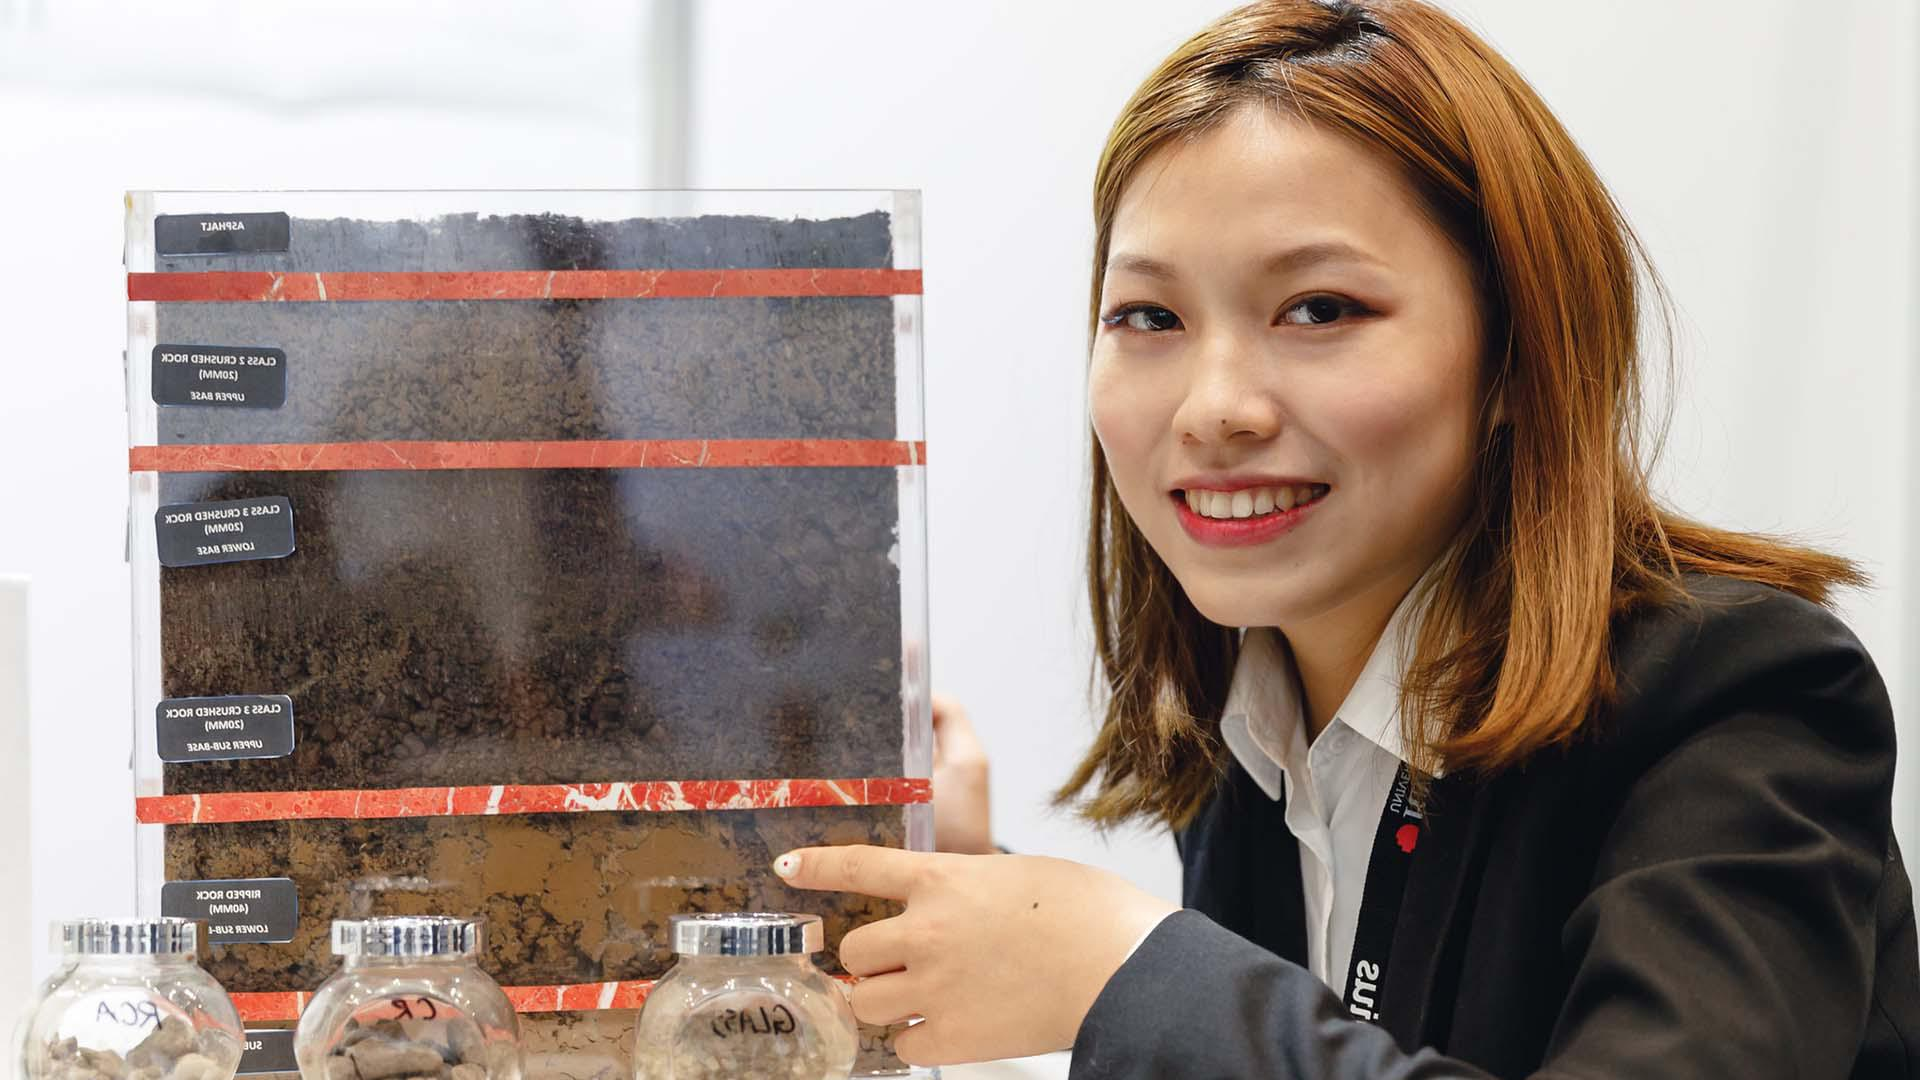 Female student in business clothes showing  display of soil layers